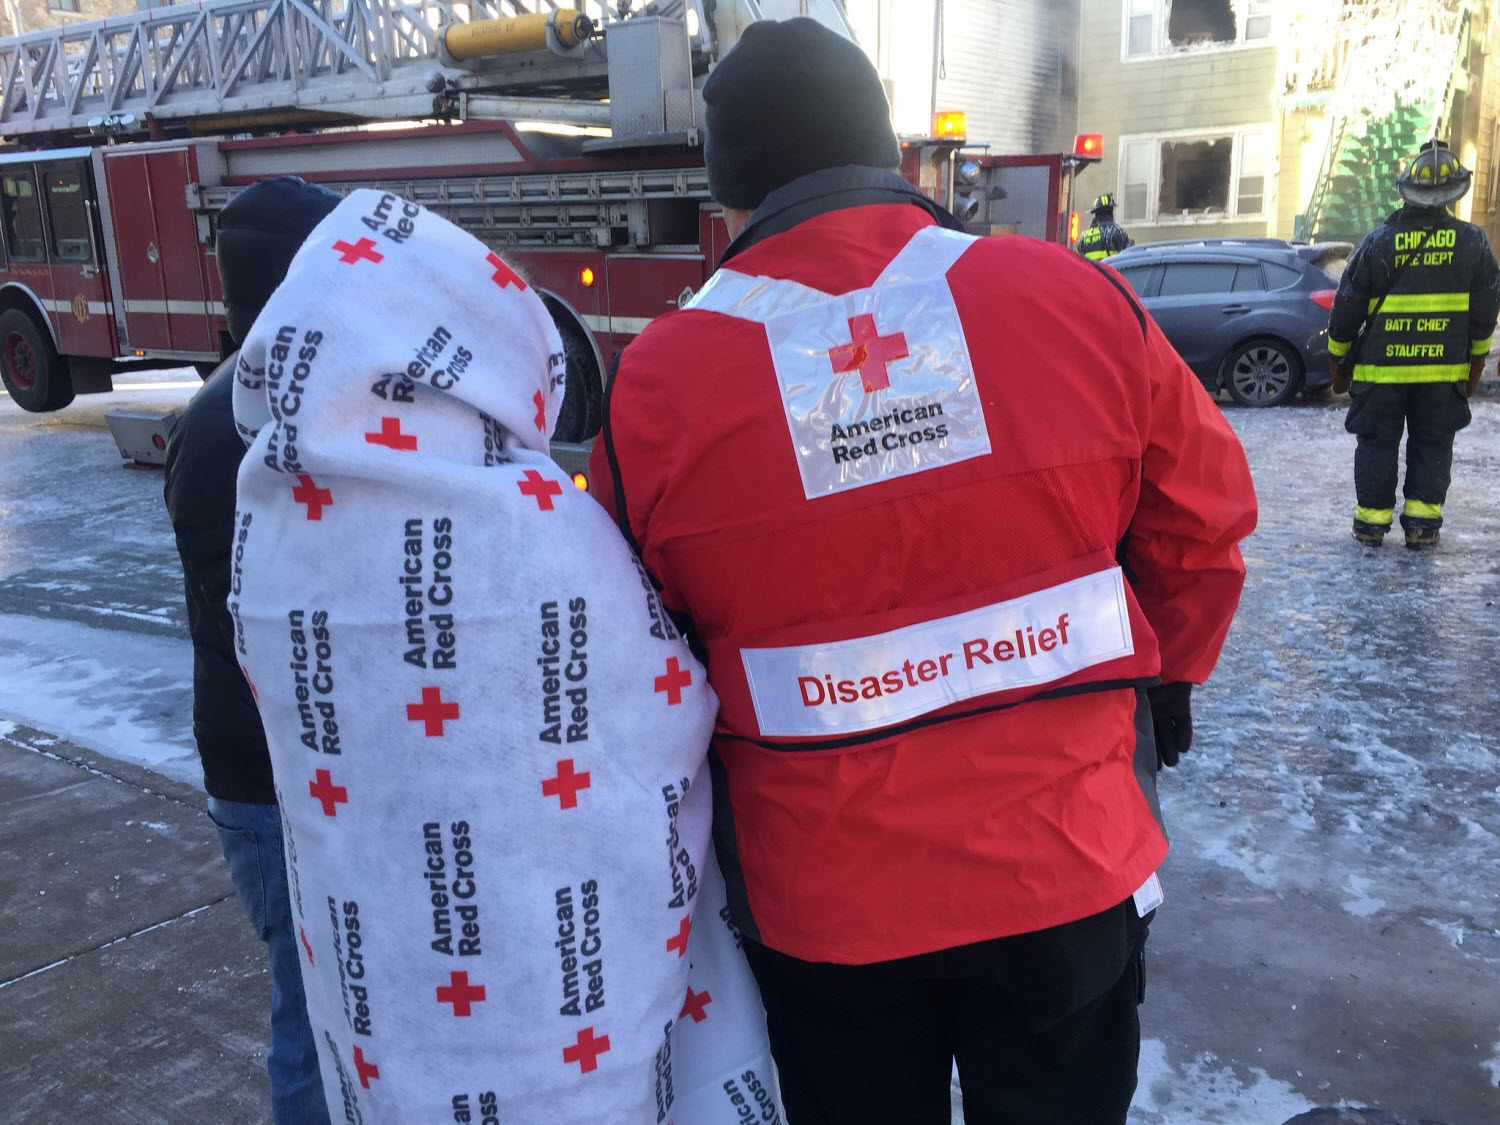 Chicago Red Cross Disaster Relief Volunteer assists victim wrapped in a Red Cross blanket